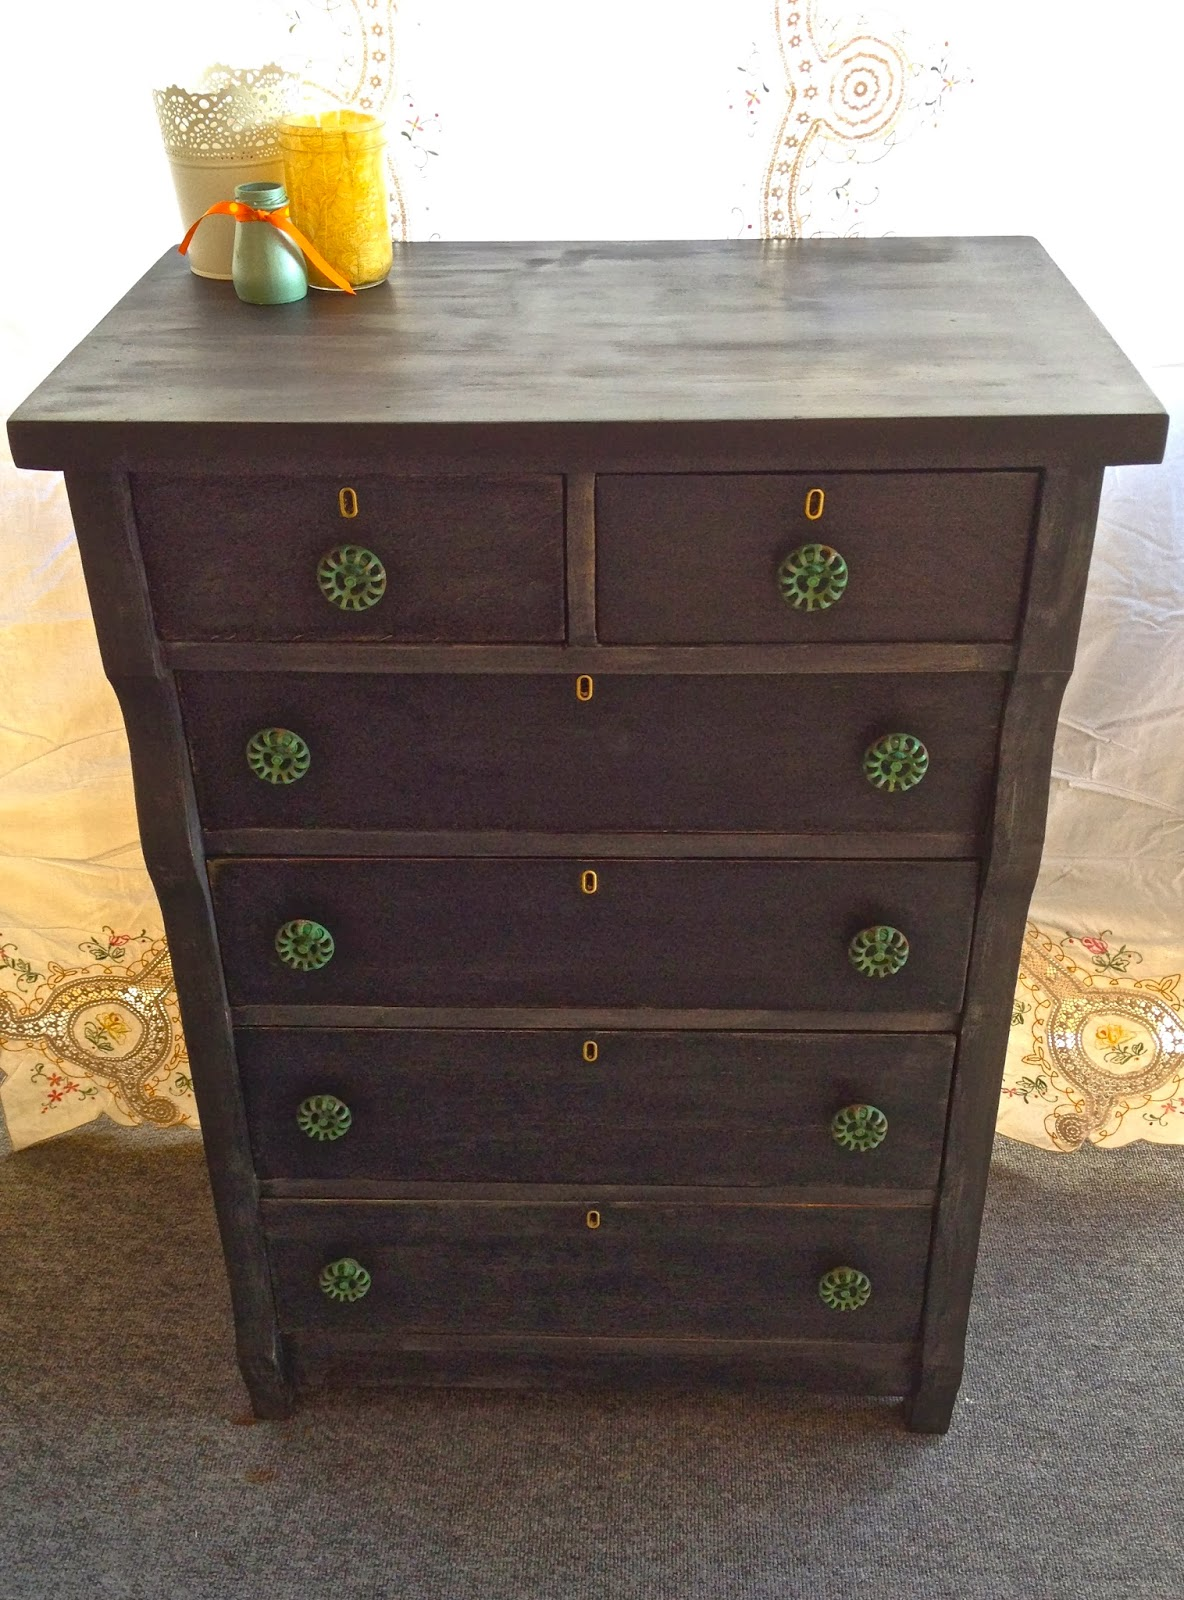 black antique dresser with green knobs